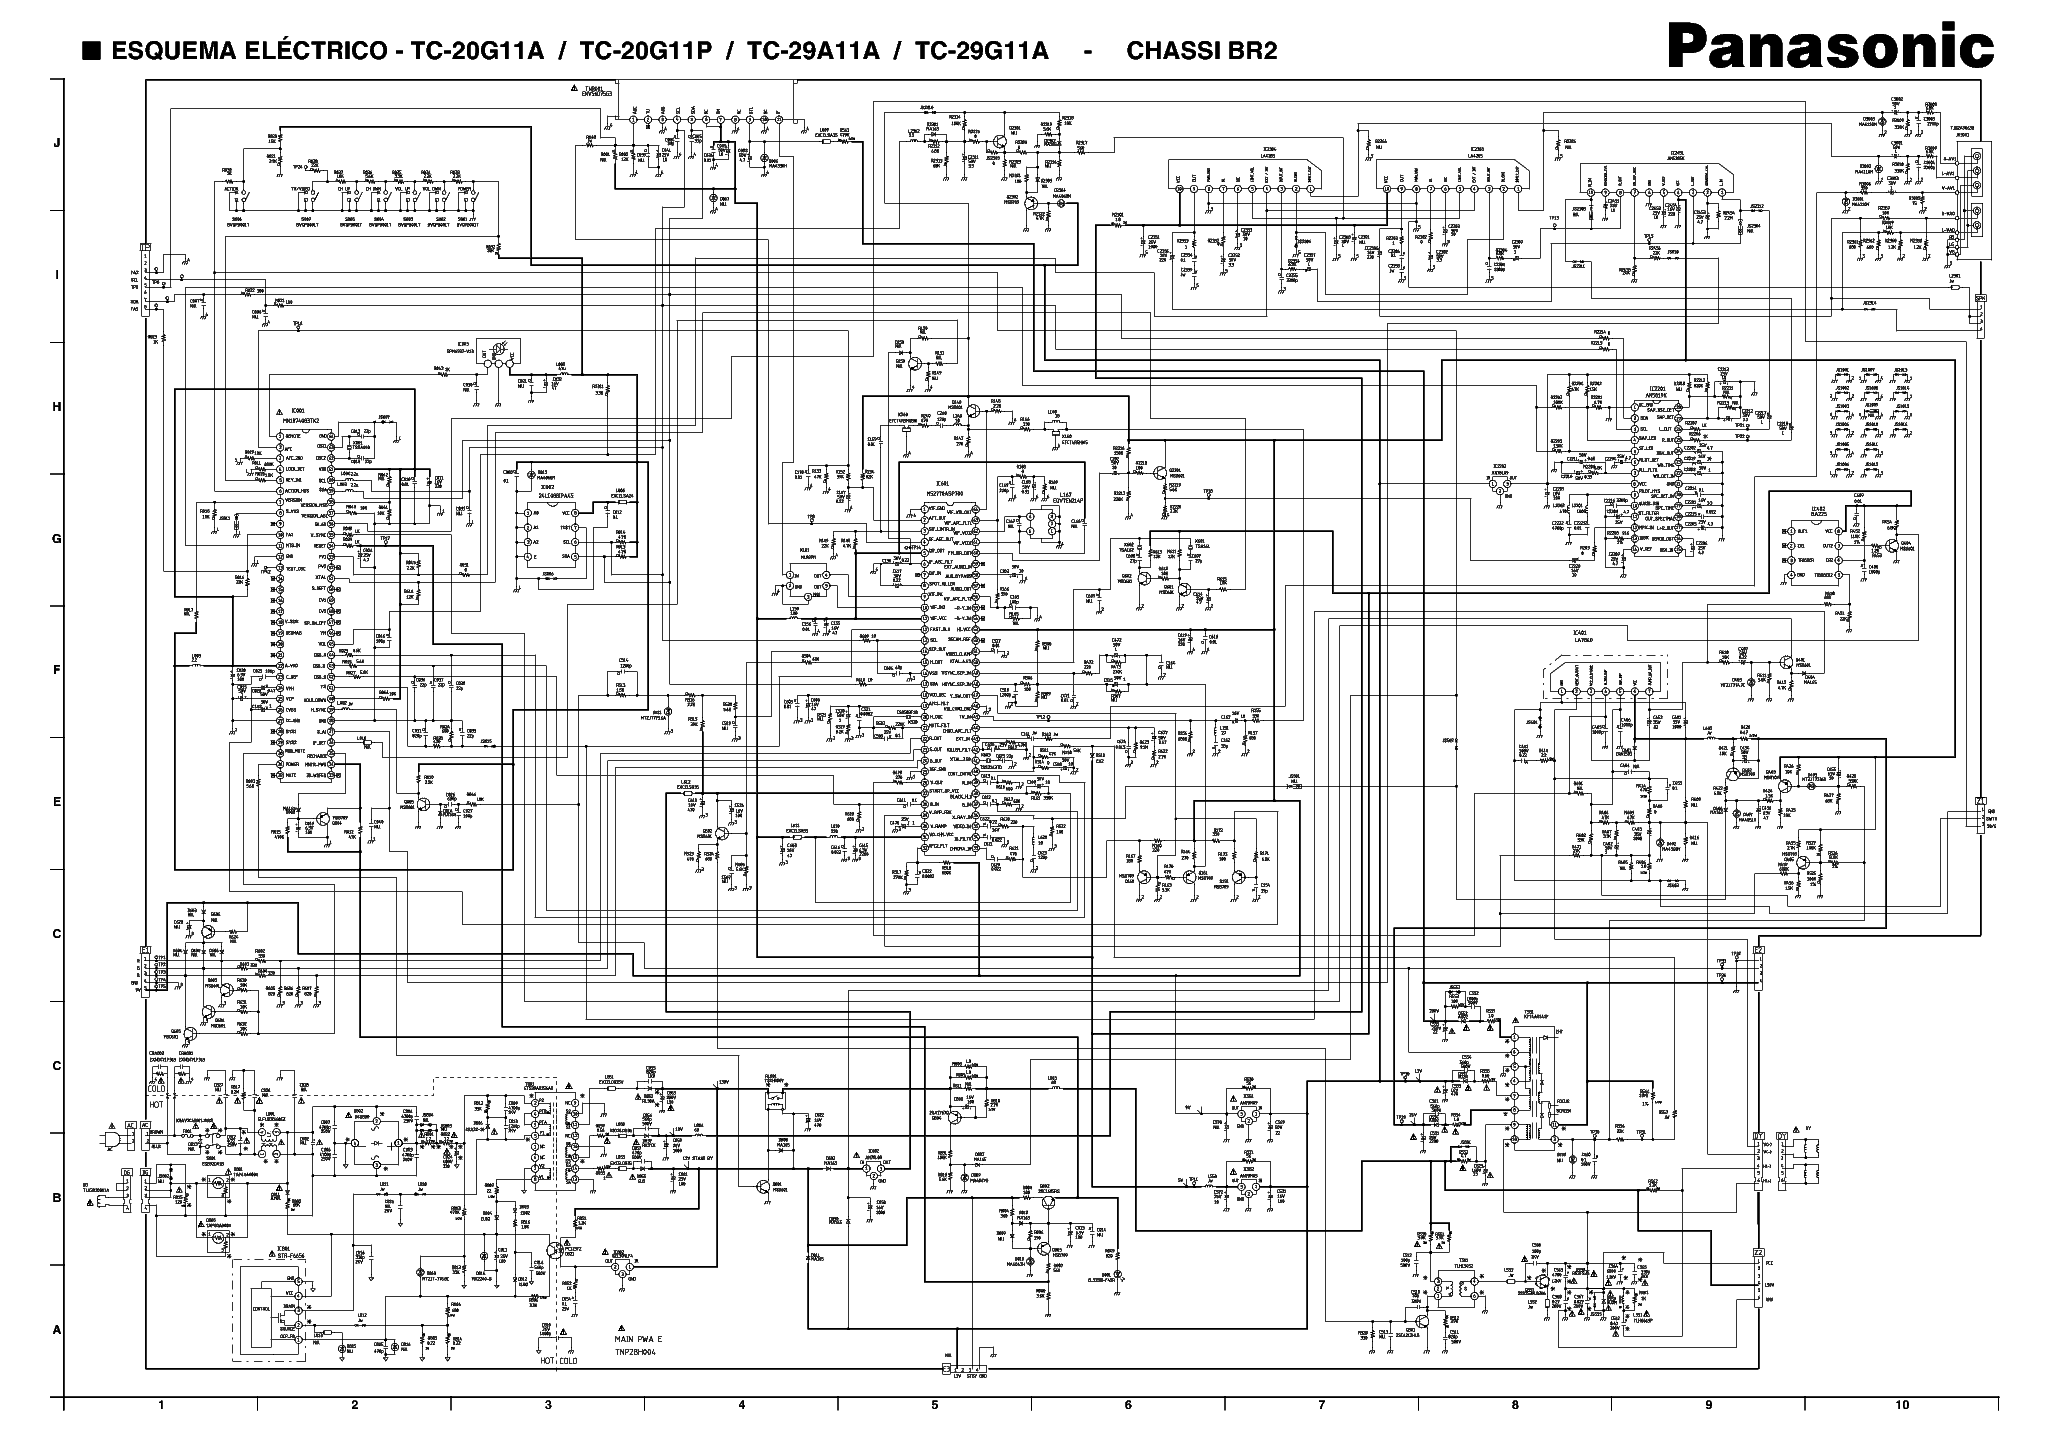 panasonic tv wiring diagrams panasonic tv wiring diagram